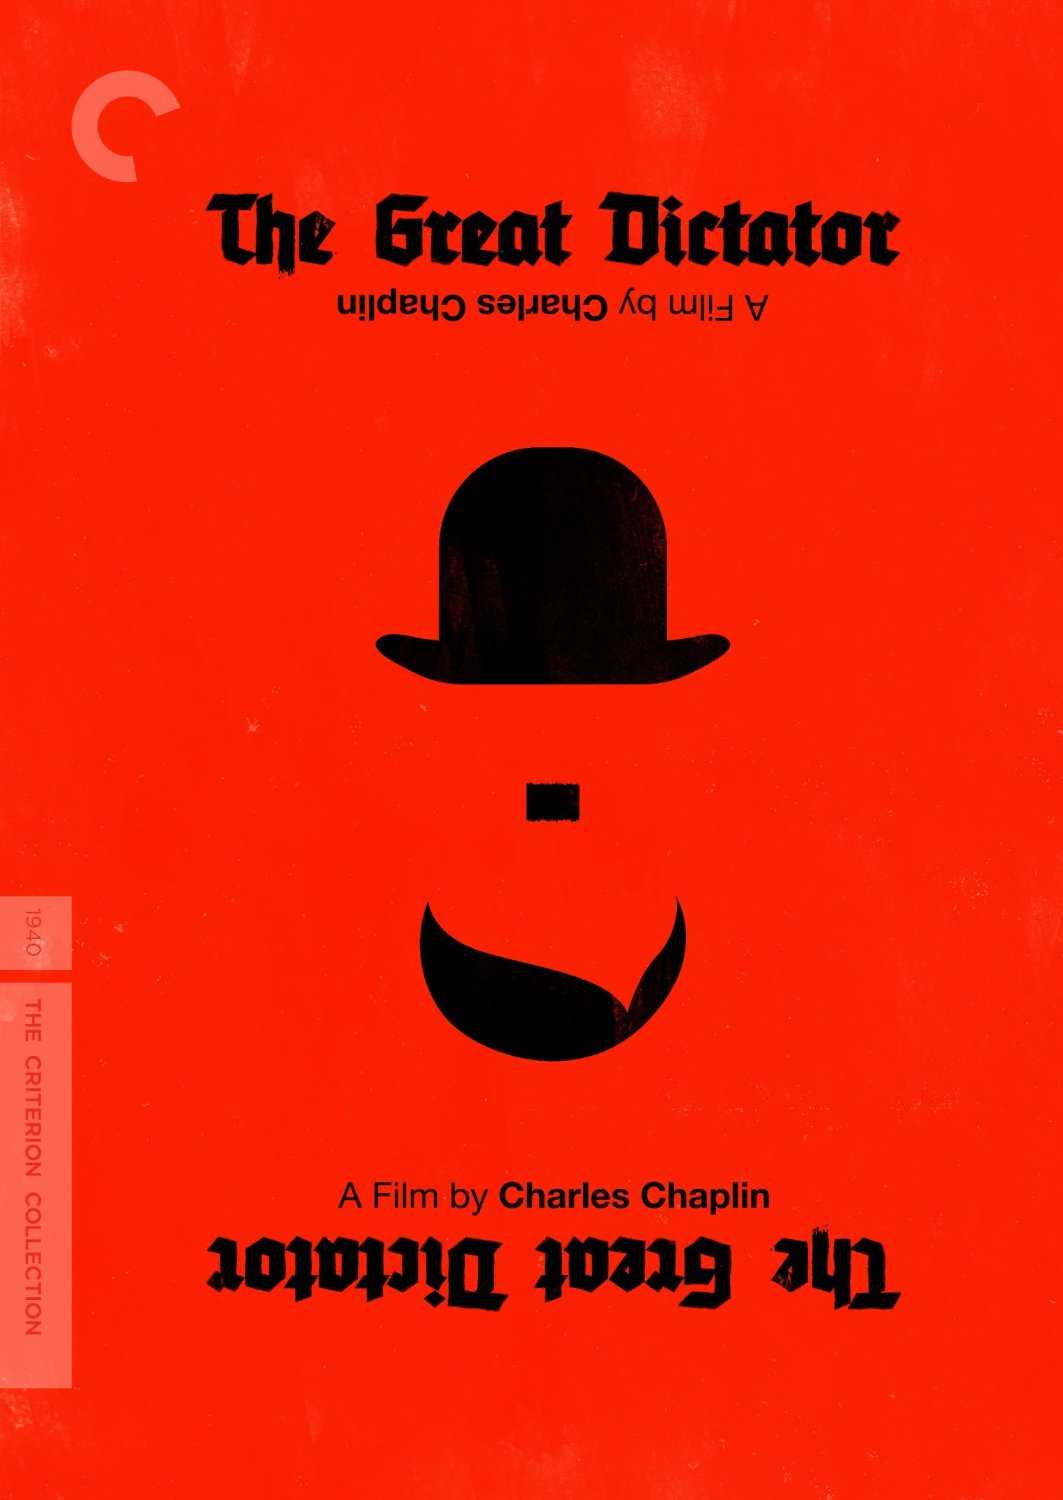 The Criterion Collection edition of The Great Dictator.